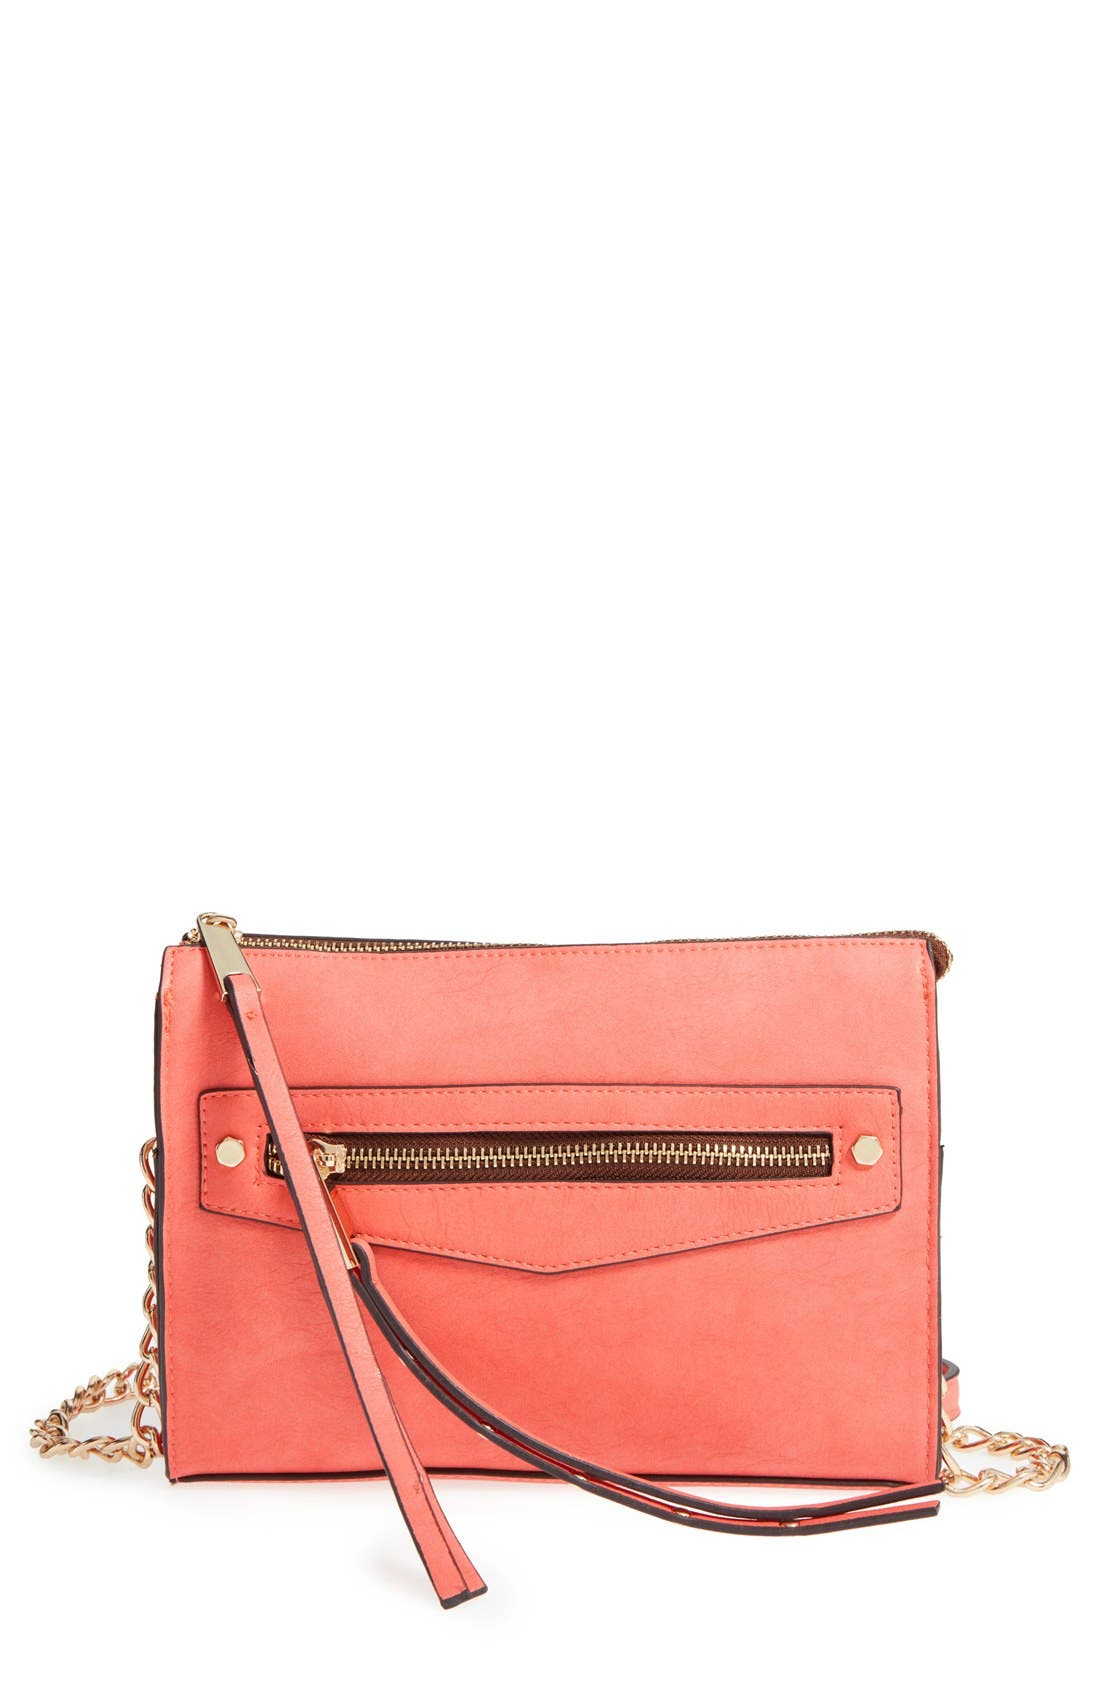 Main Image - Dolce Girl Stud Crossbody Bag